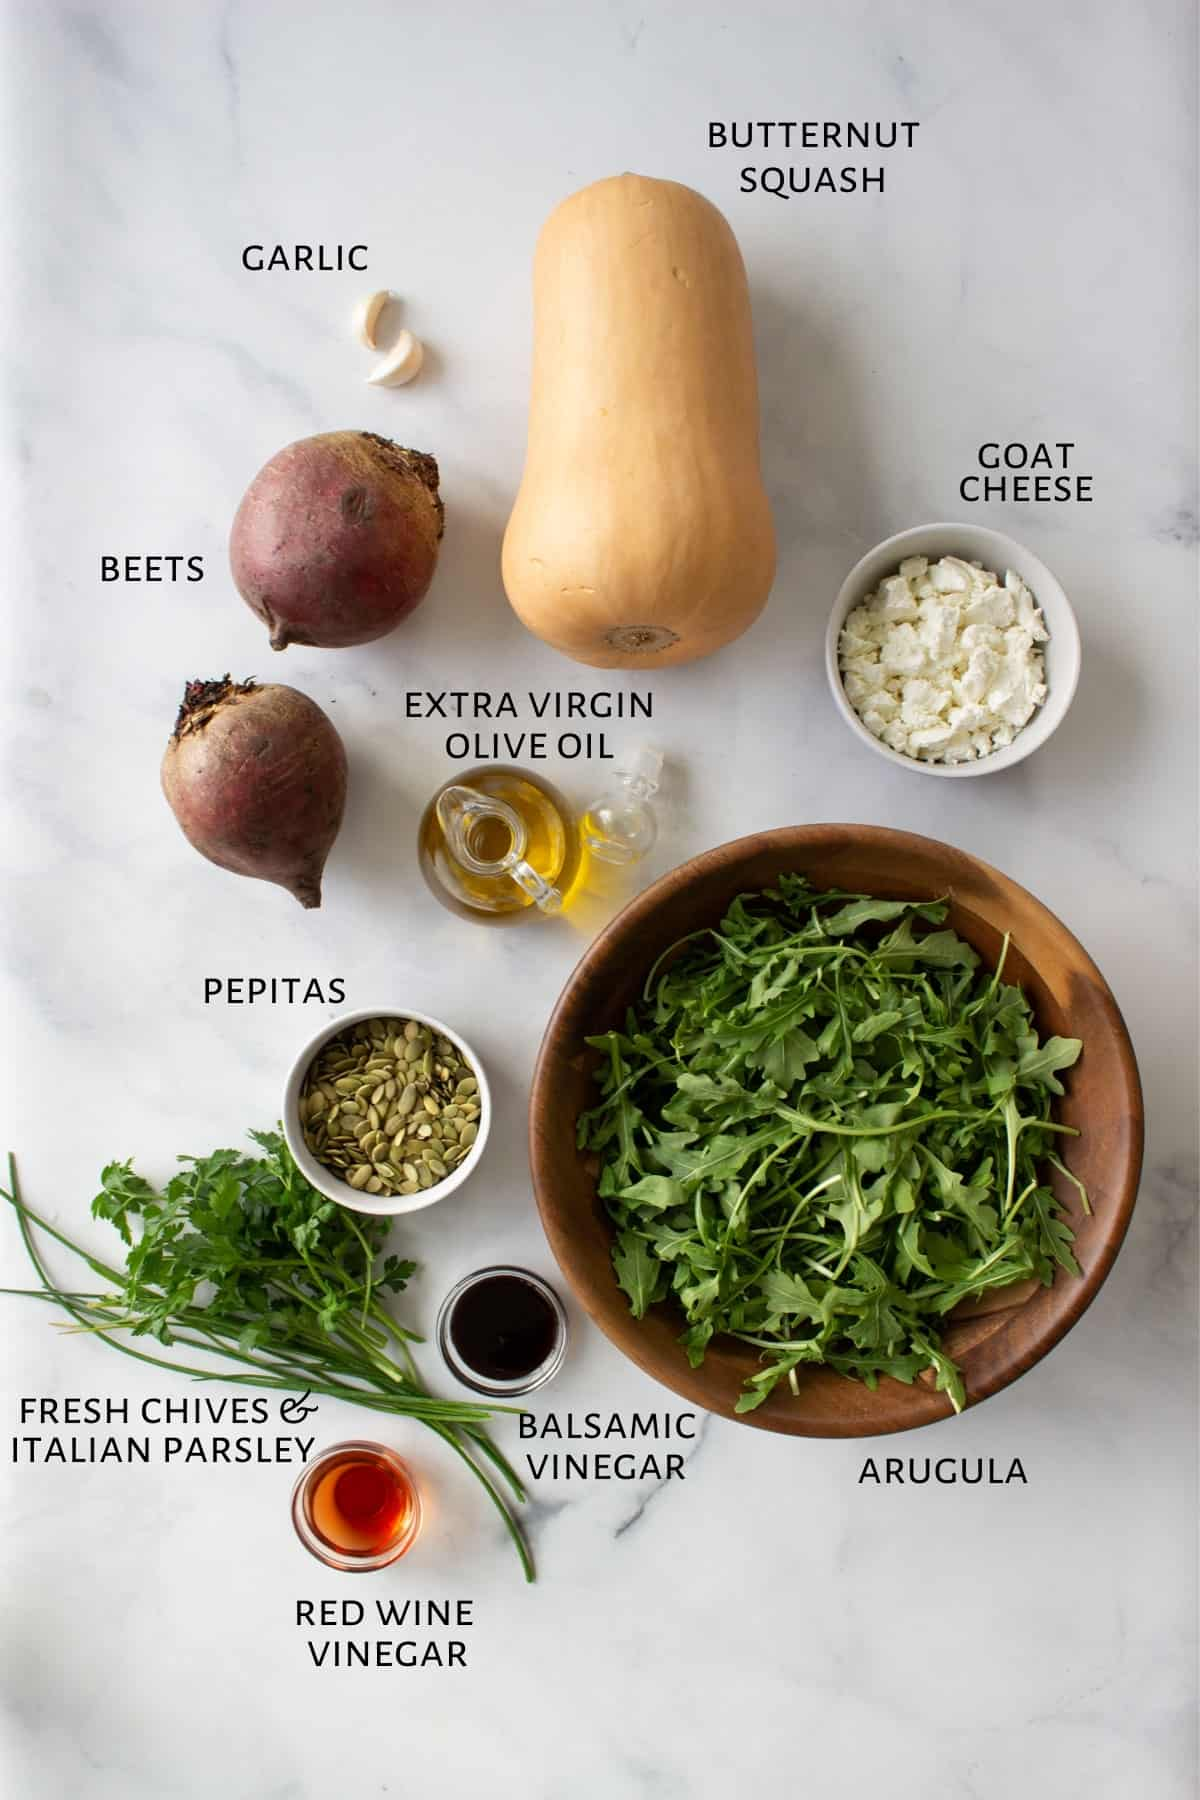 Ingredients for a salad are laid out on a marble countertop.